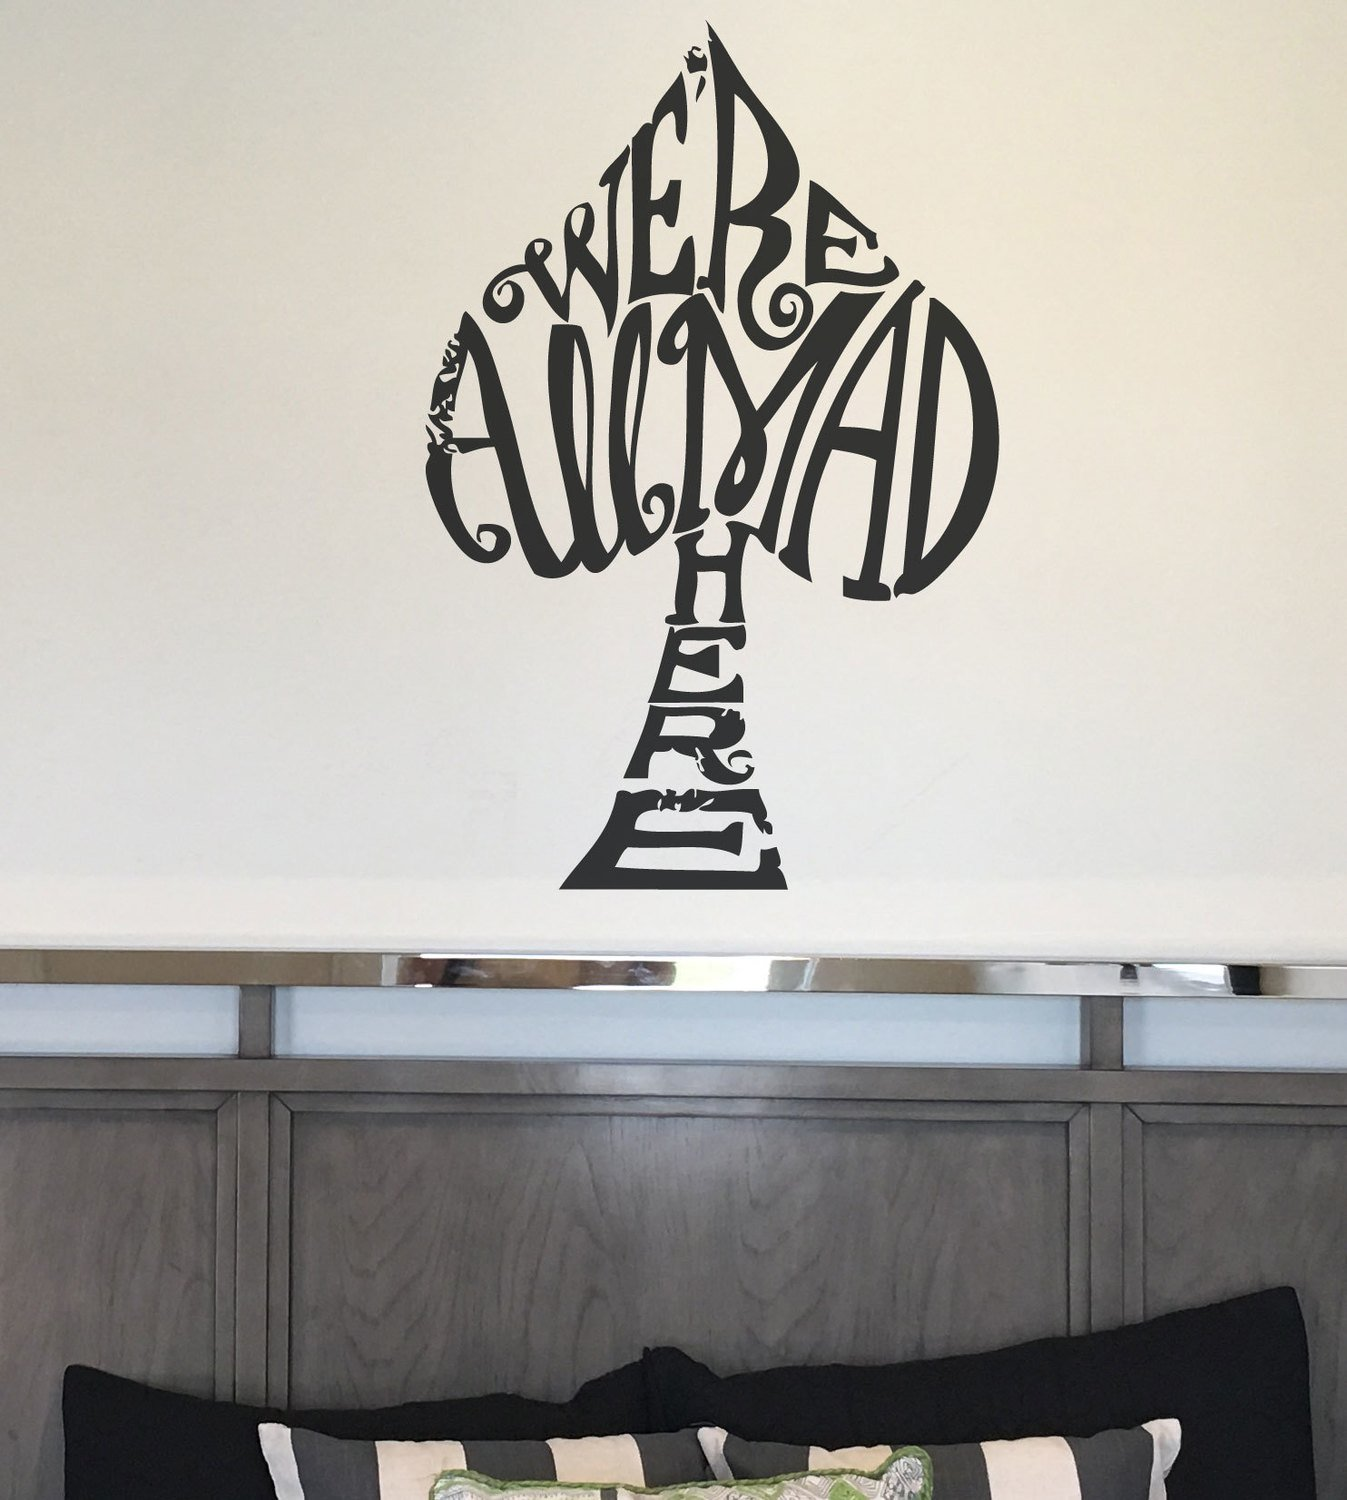 We're all mad here Alice in wonderland decal wall sticker CT201